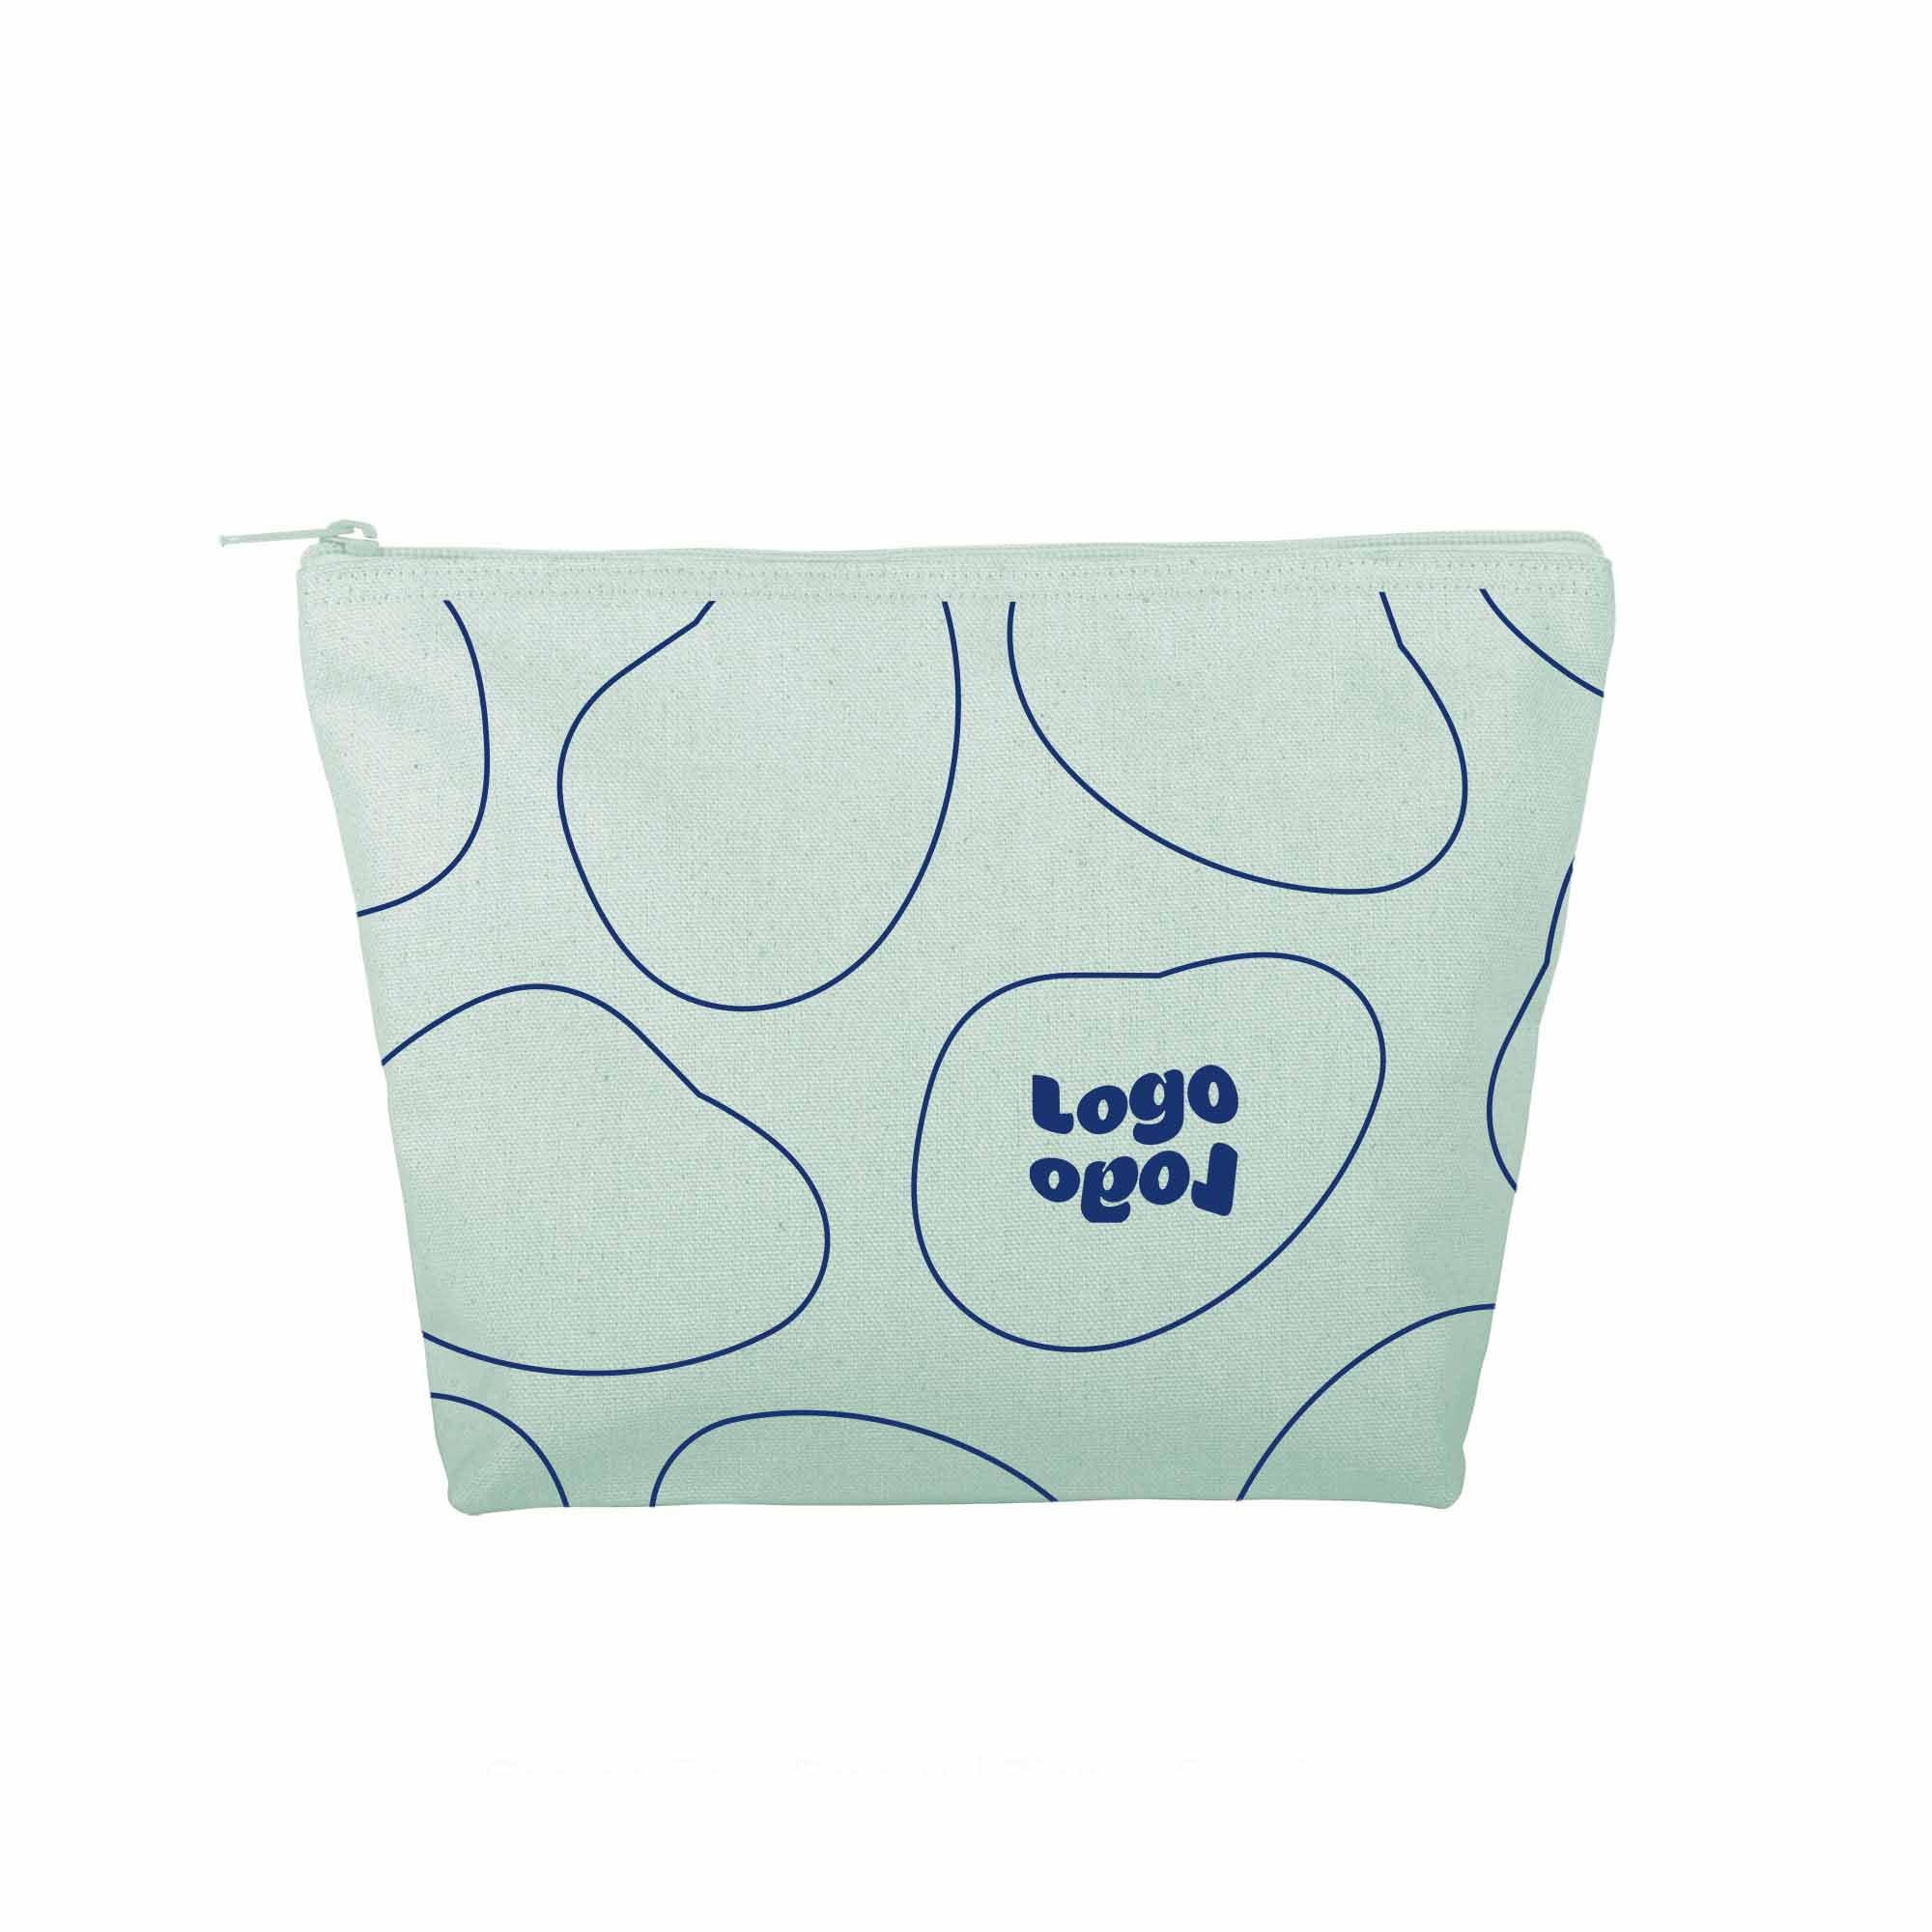 267958 premium cherie pouch large one color one location imprint full bleed